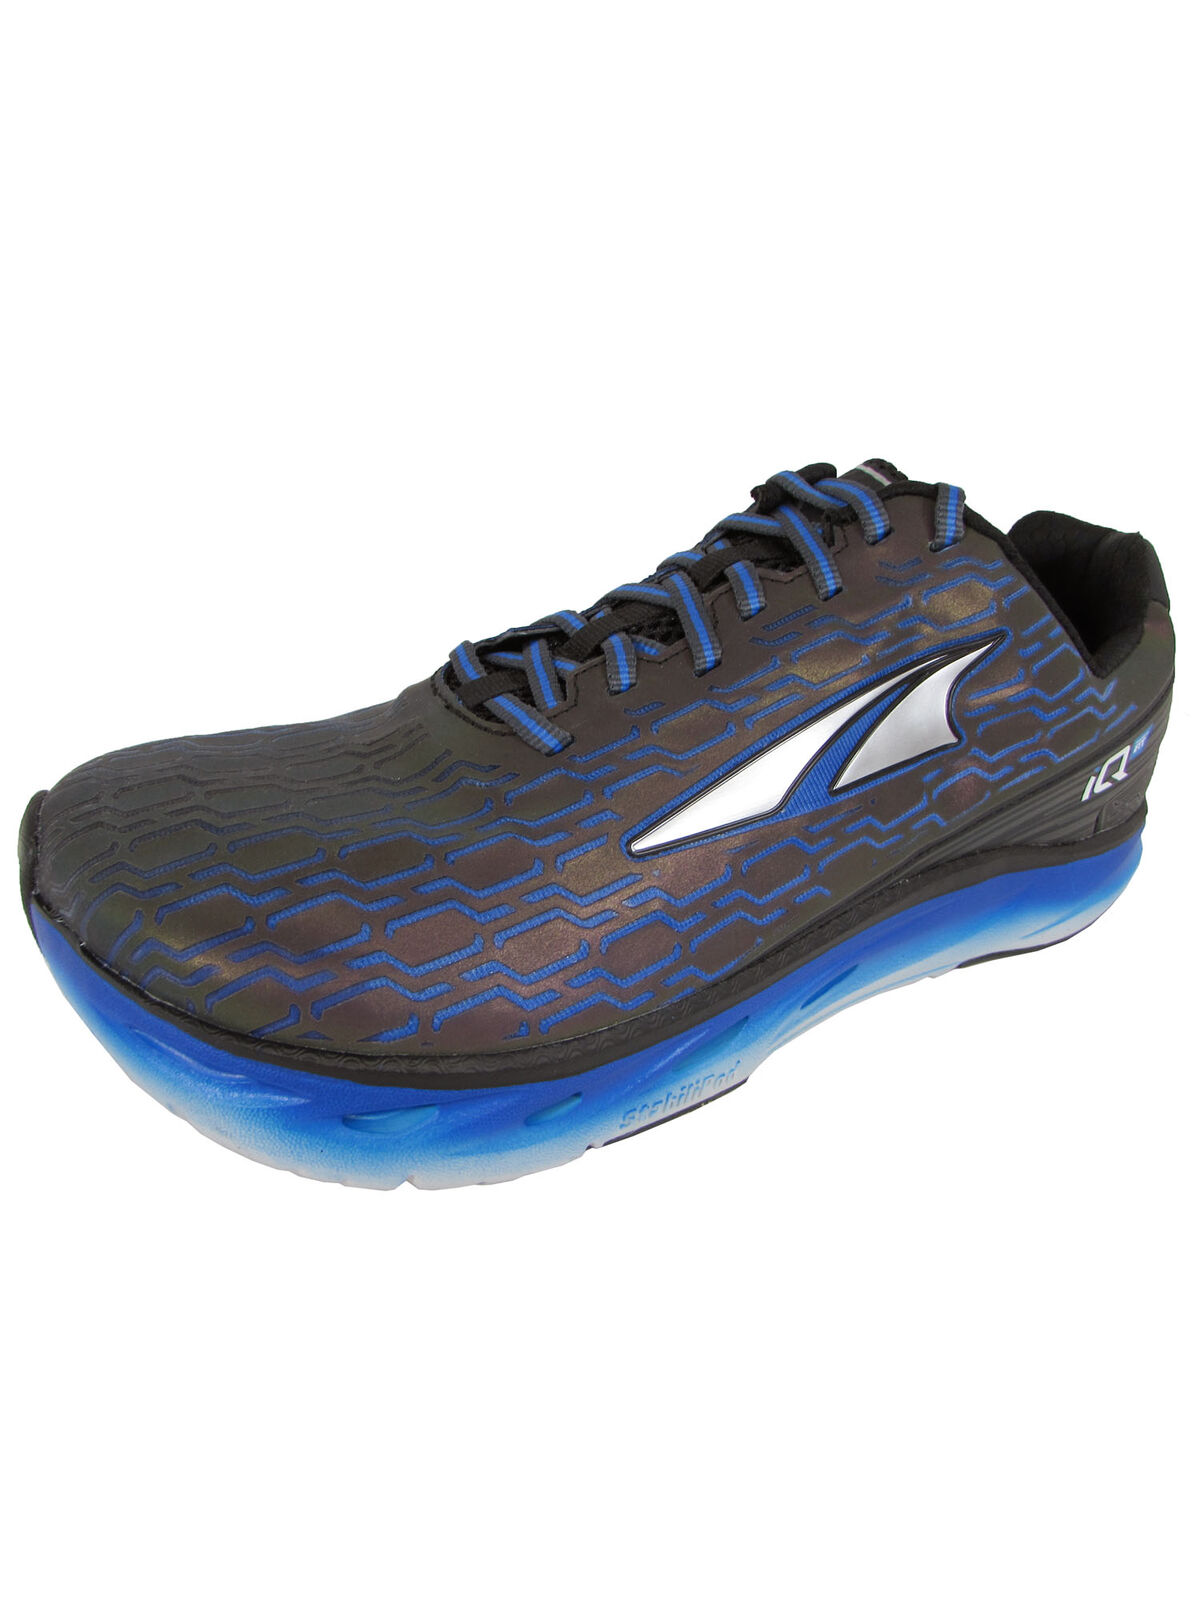 Altra Uomo IQ IQ IQ Interactive Running  Shoes 85b50c